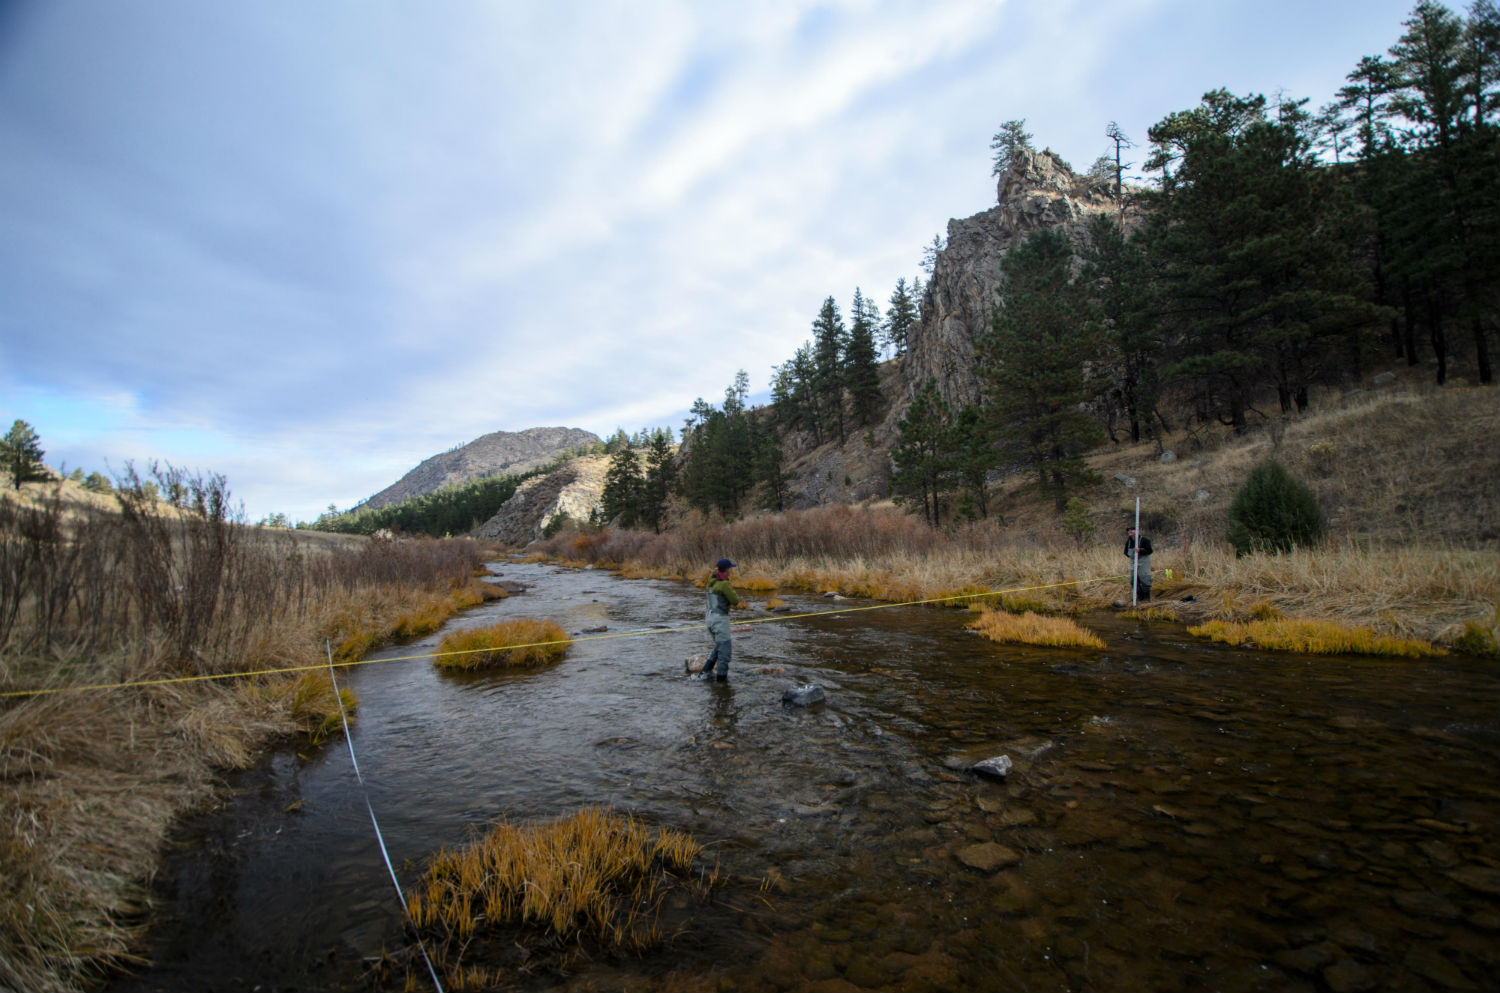 Colorado Parks and Wildlife workers conduct an assessment on the North Fork of the Poudre River. Credit: Colorado Parks and Wildlife